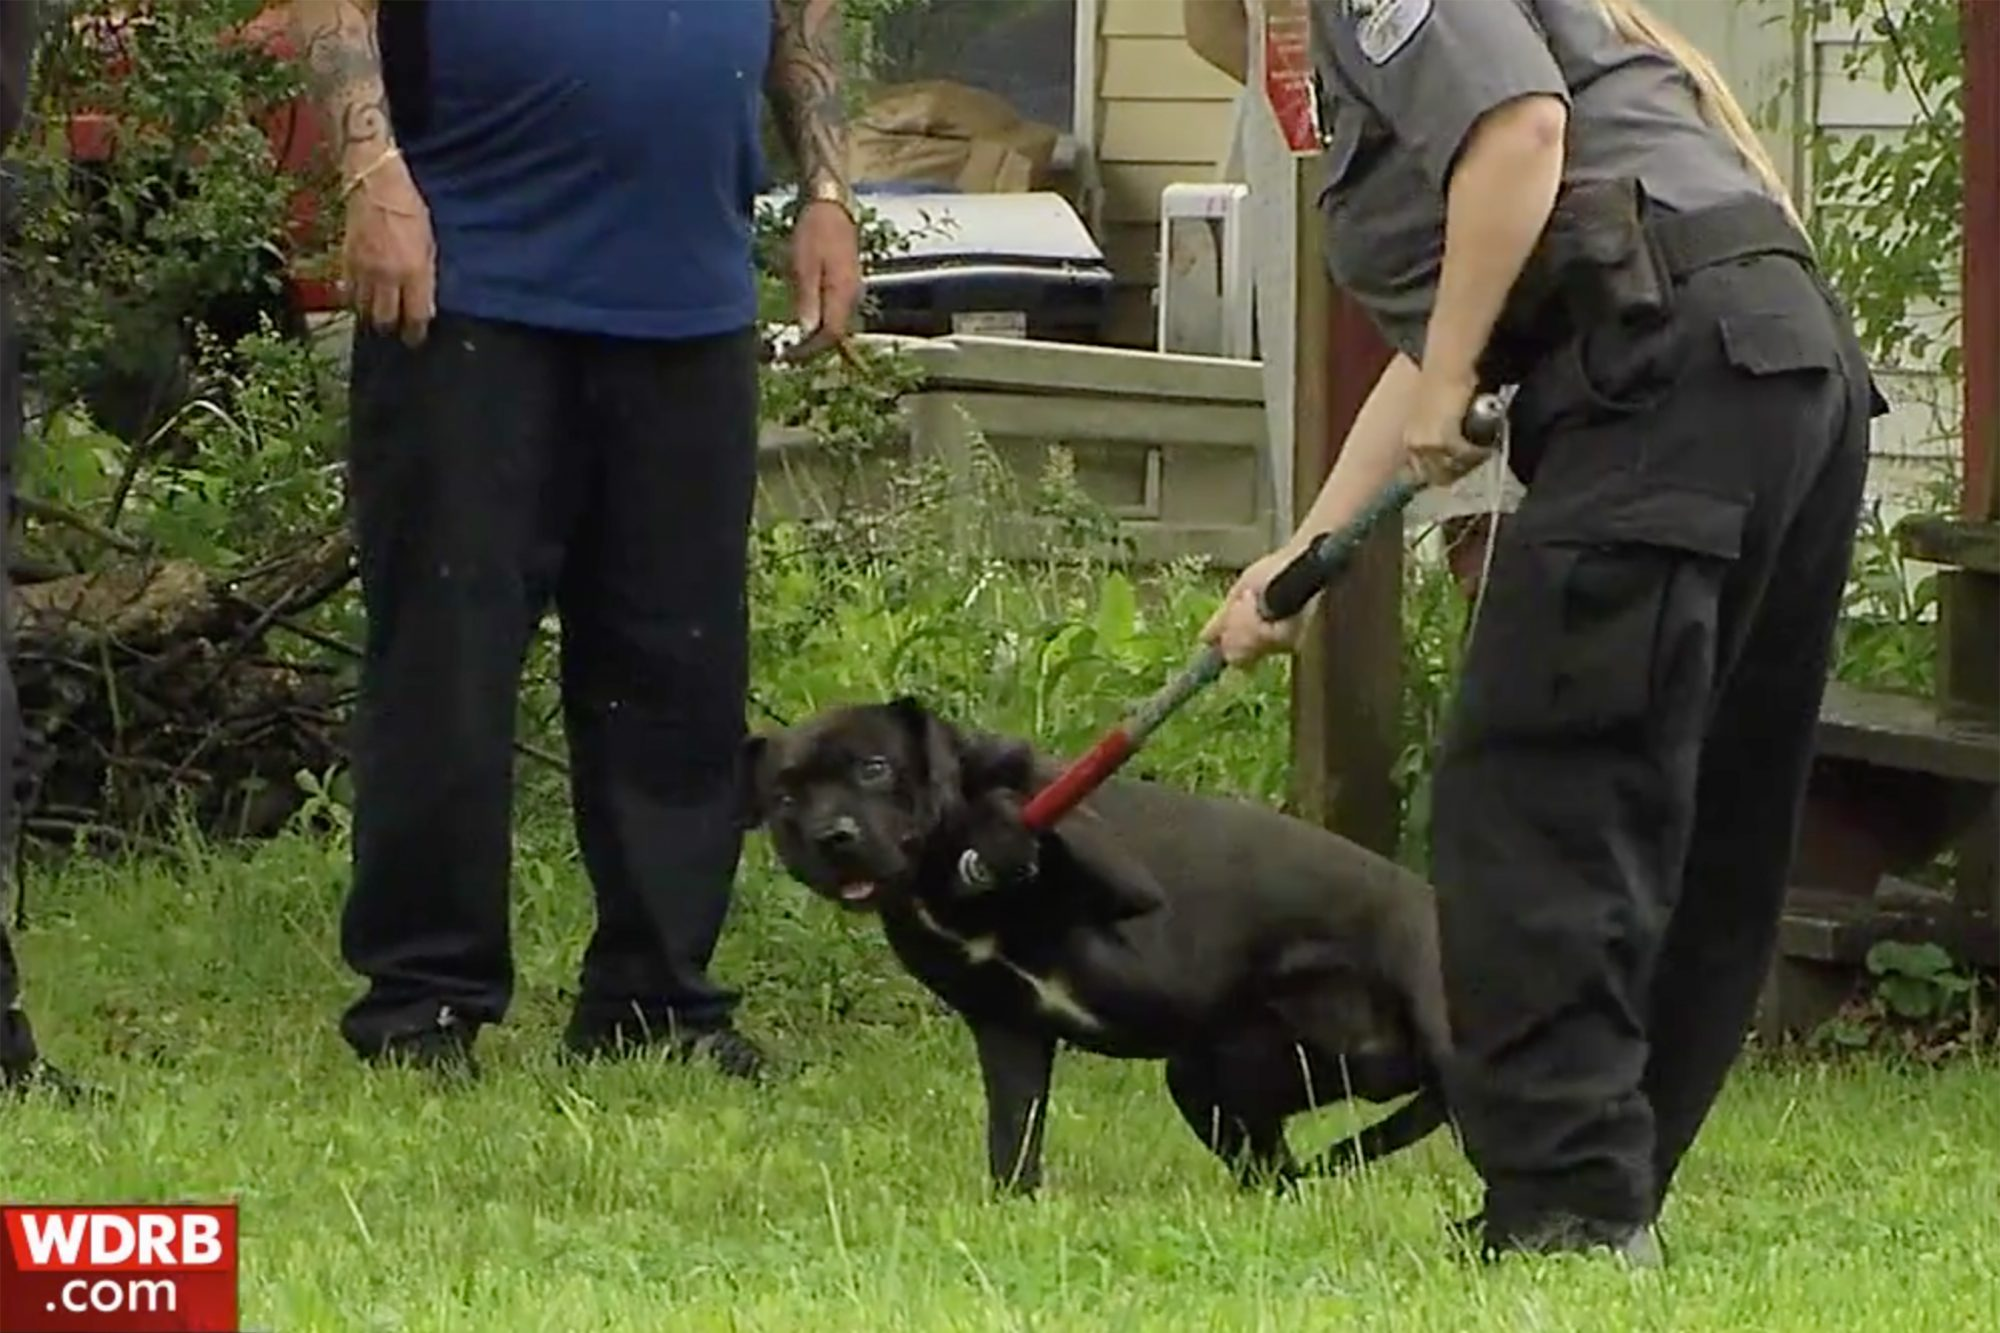 https://www.wdrb.com/news/year-old-who-died-after-dog-attack-in-chickasaw-neighborhood/article_691acd26-6dee-11e9-a913-7fc8732bd179.html